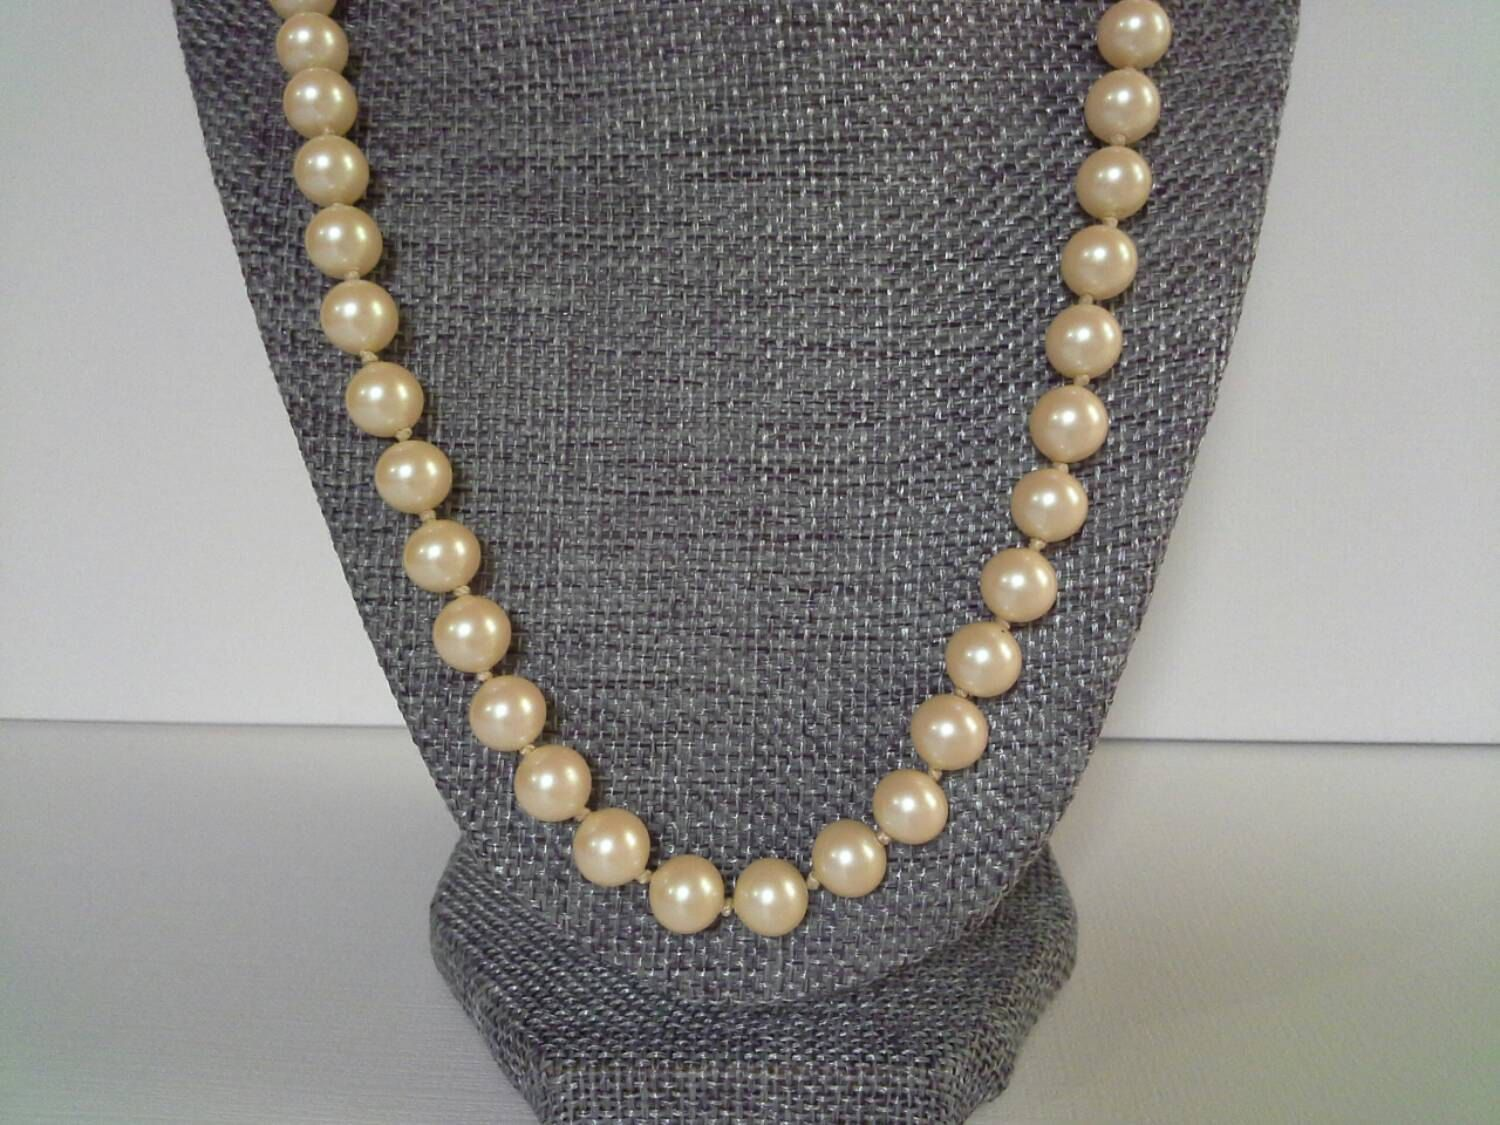 10e88802a1e88 Du Barry Pearls, Sterling Clasp, DuBarry Pearls, Faux Pearls ...